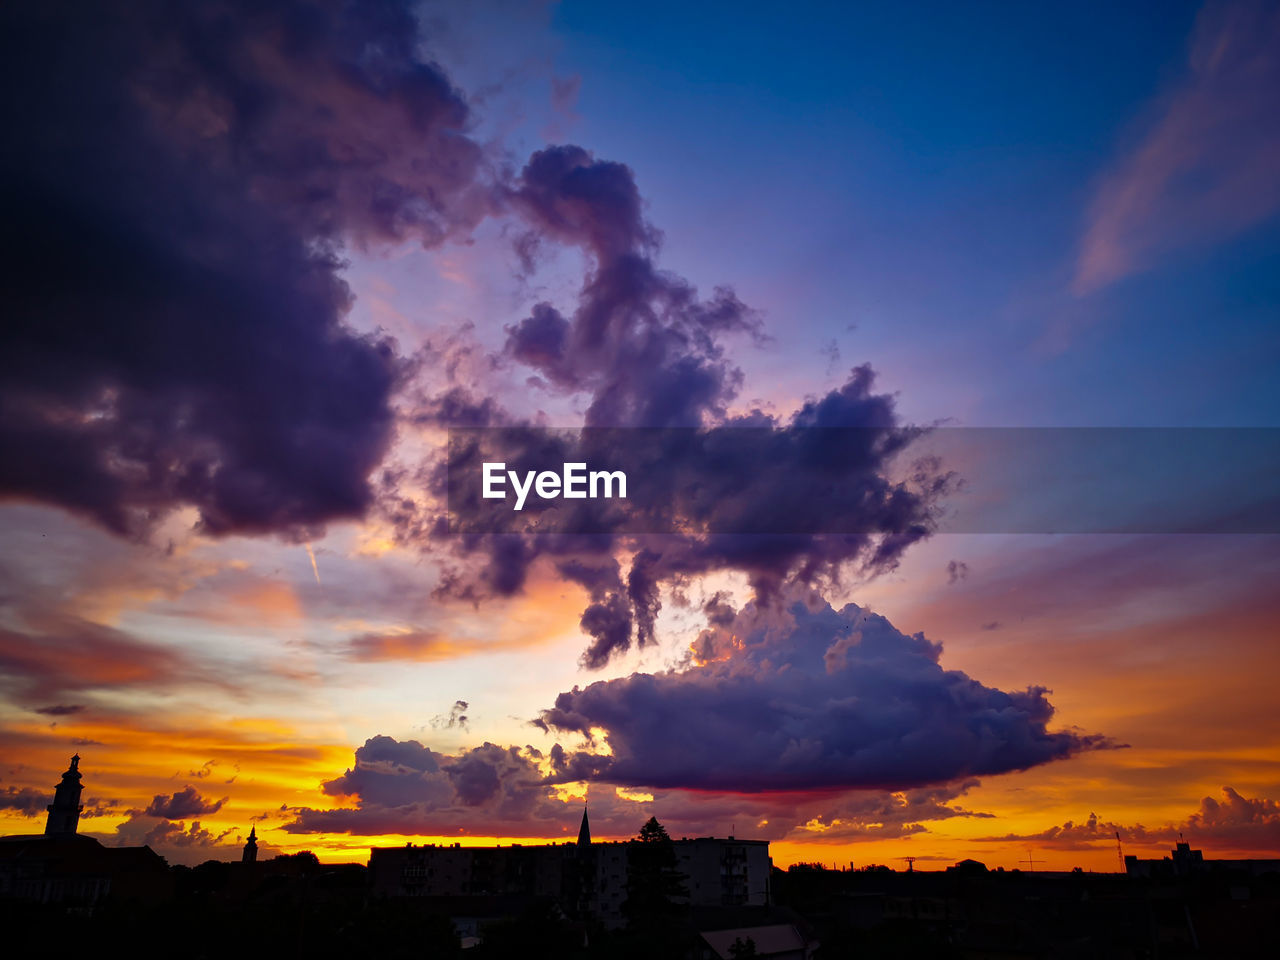 sky, sunset, cloud - sky, beauty in nature, silhouette, nature, scenics - nature, orange color, building exterior, architecture, built structure, no people, outdoors, dramatic sky, environment, smoke - physical structure, building, idyllic, low angle view, power, pollution, power in nature